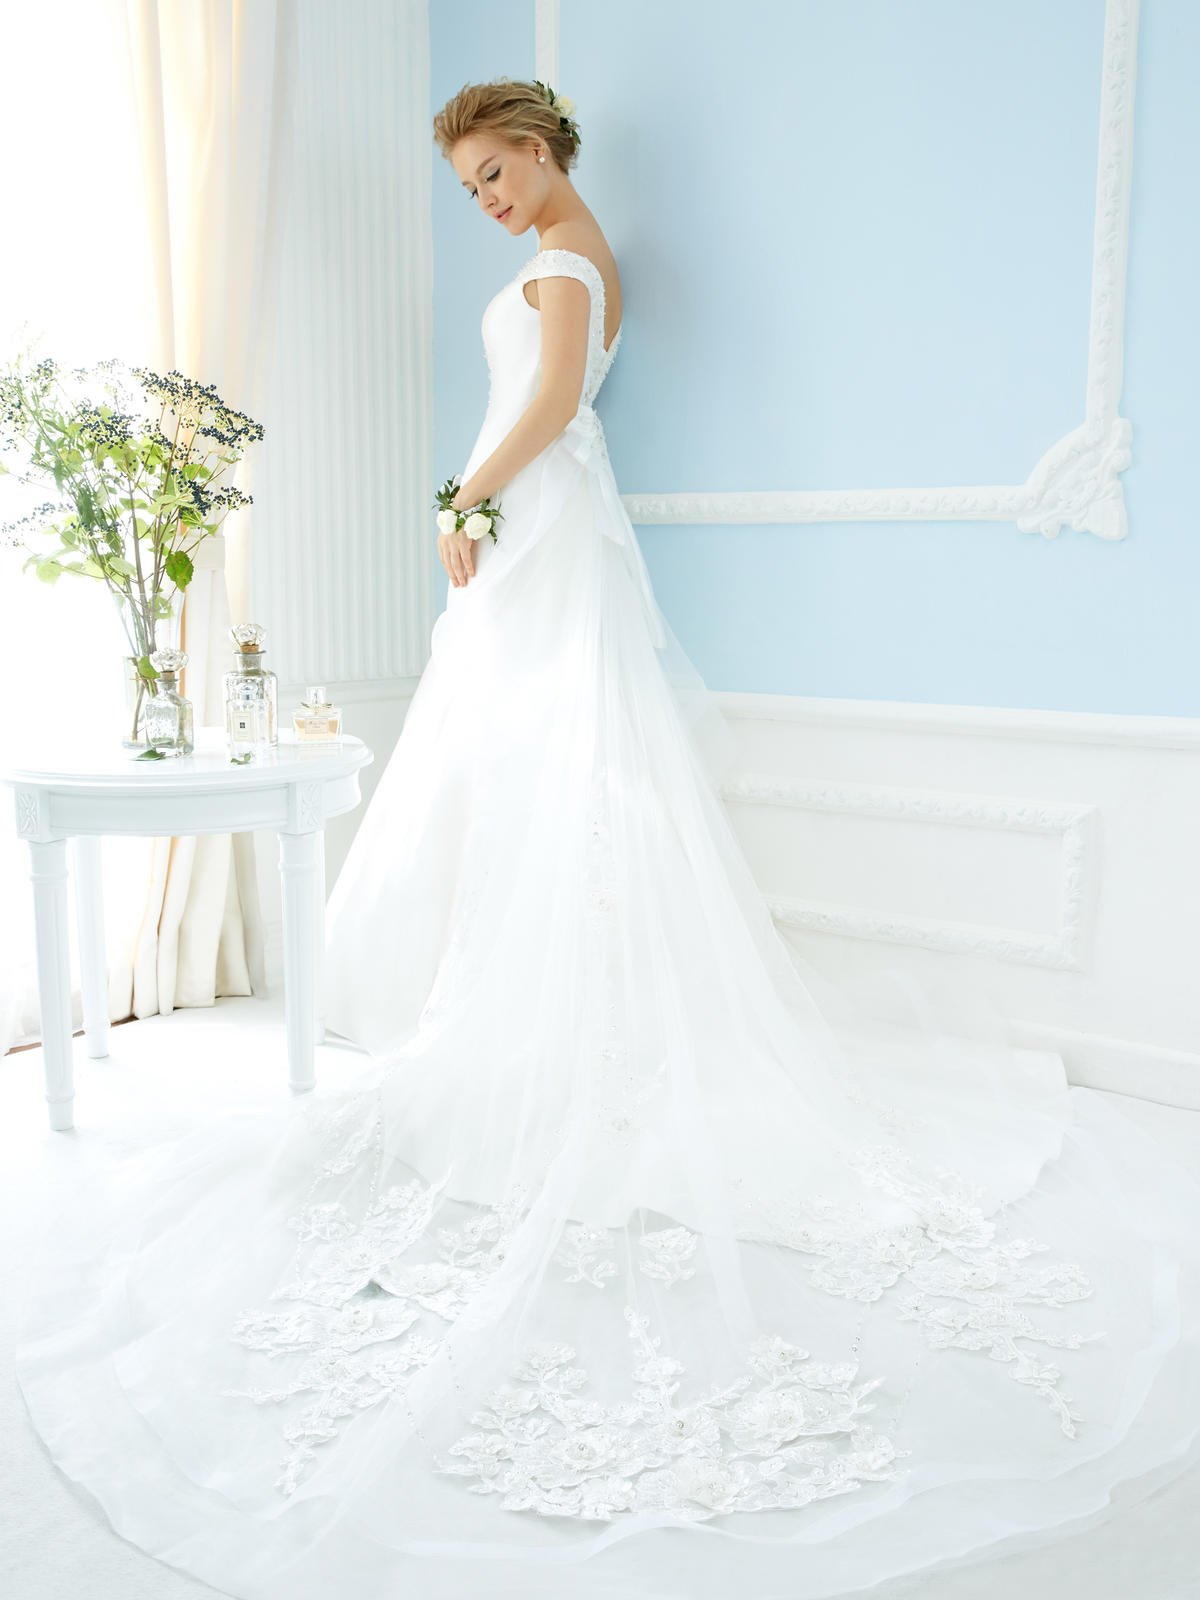 http://www.pwimages.com/images/perfectbride/d17fd5b2bfd0f2ab6dbd816020b55782-23.jpg